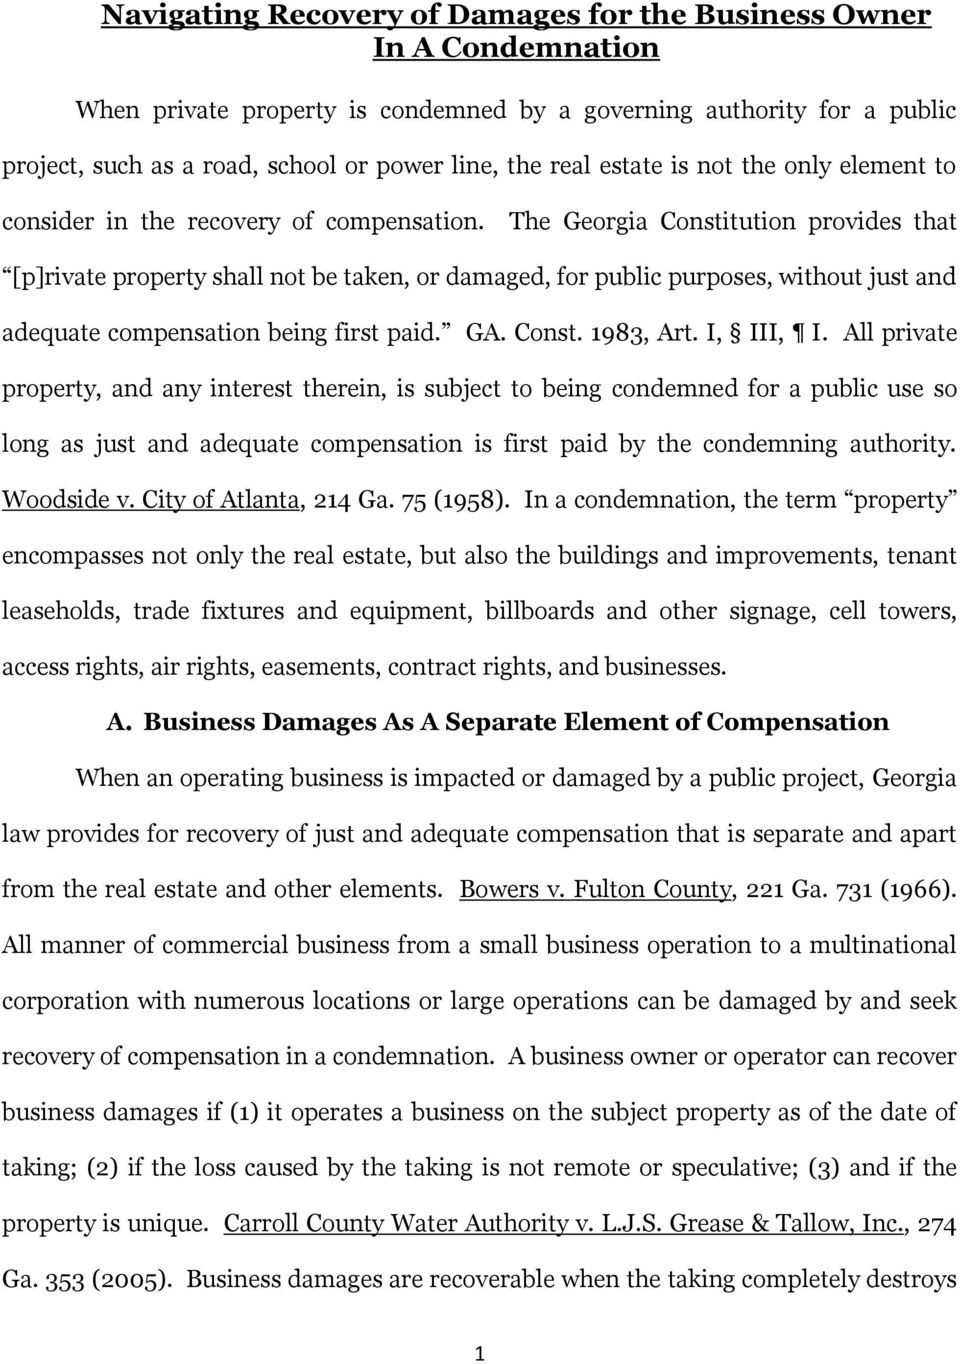 The Georgia Constitution provides that [p]rivate property shall not be taken, or damaged, for public purposes, without just and adequate compensation being first paid. GA. Const. 1983, Art. I, III, I.